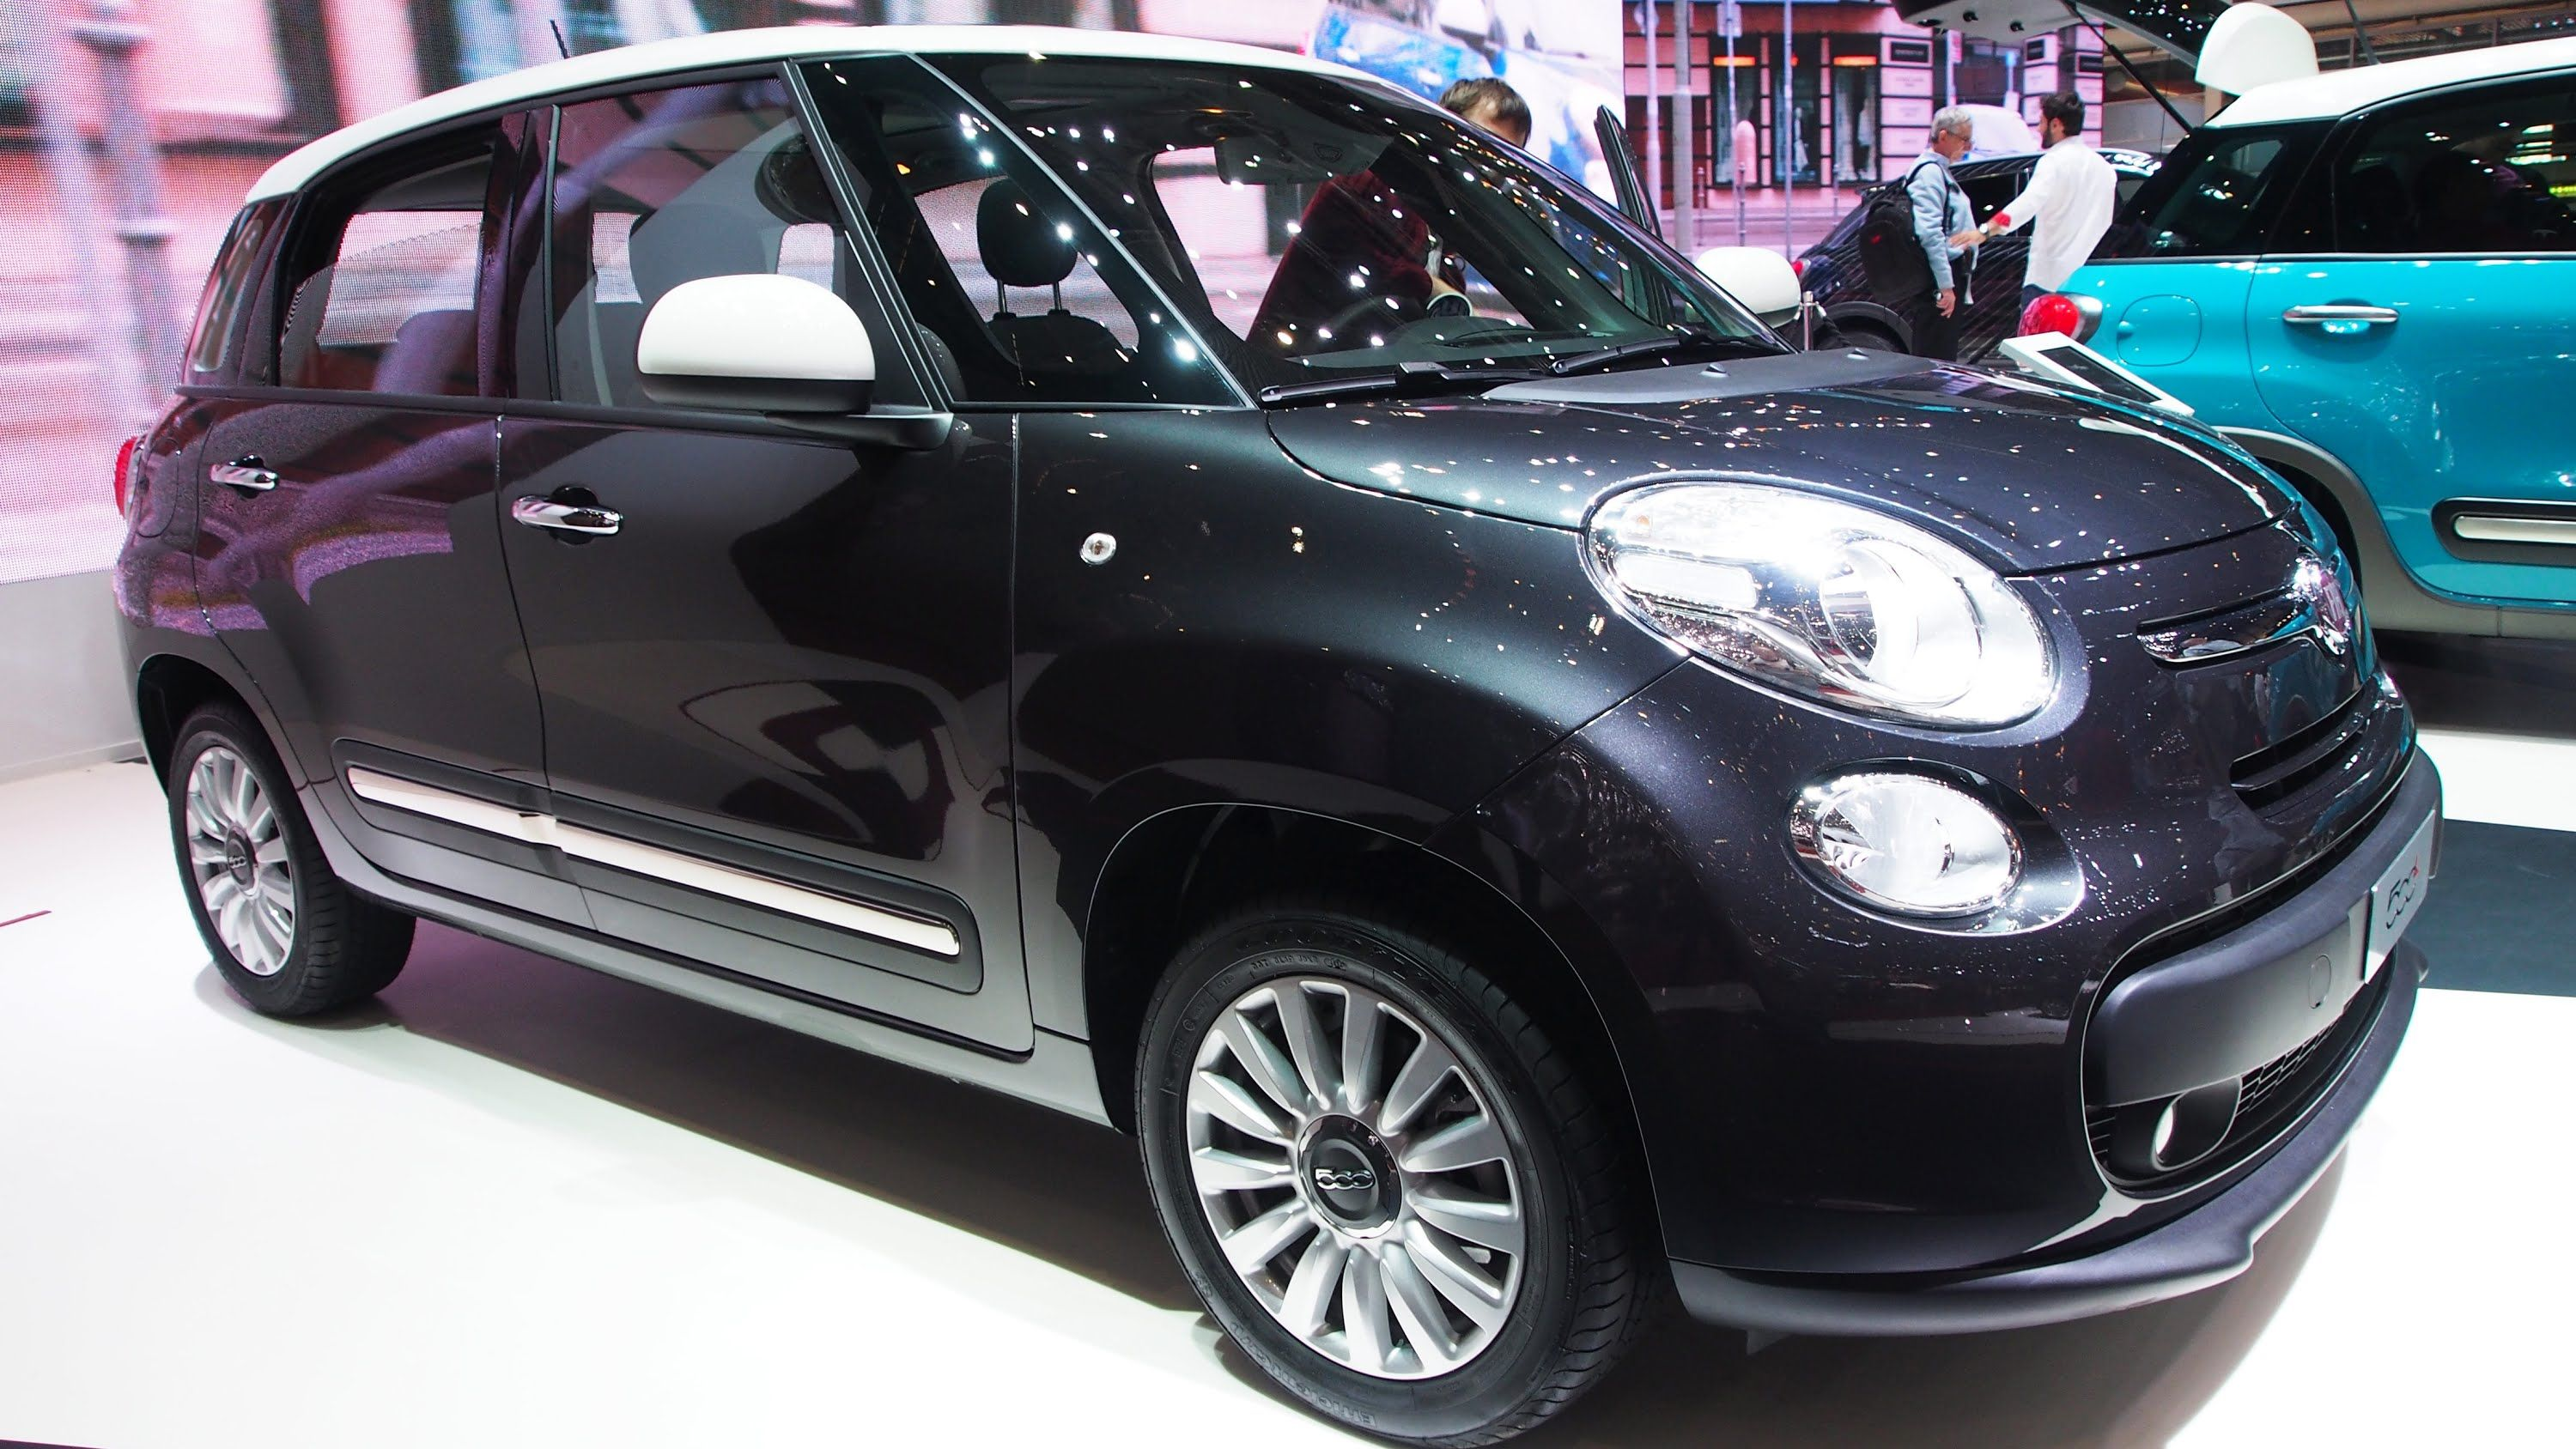 2015 Fiat 500l 0 9 Twinair 105 Cv Pop Star Exterior And Interior